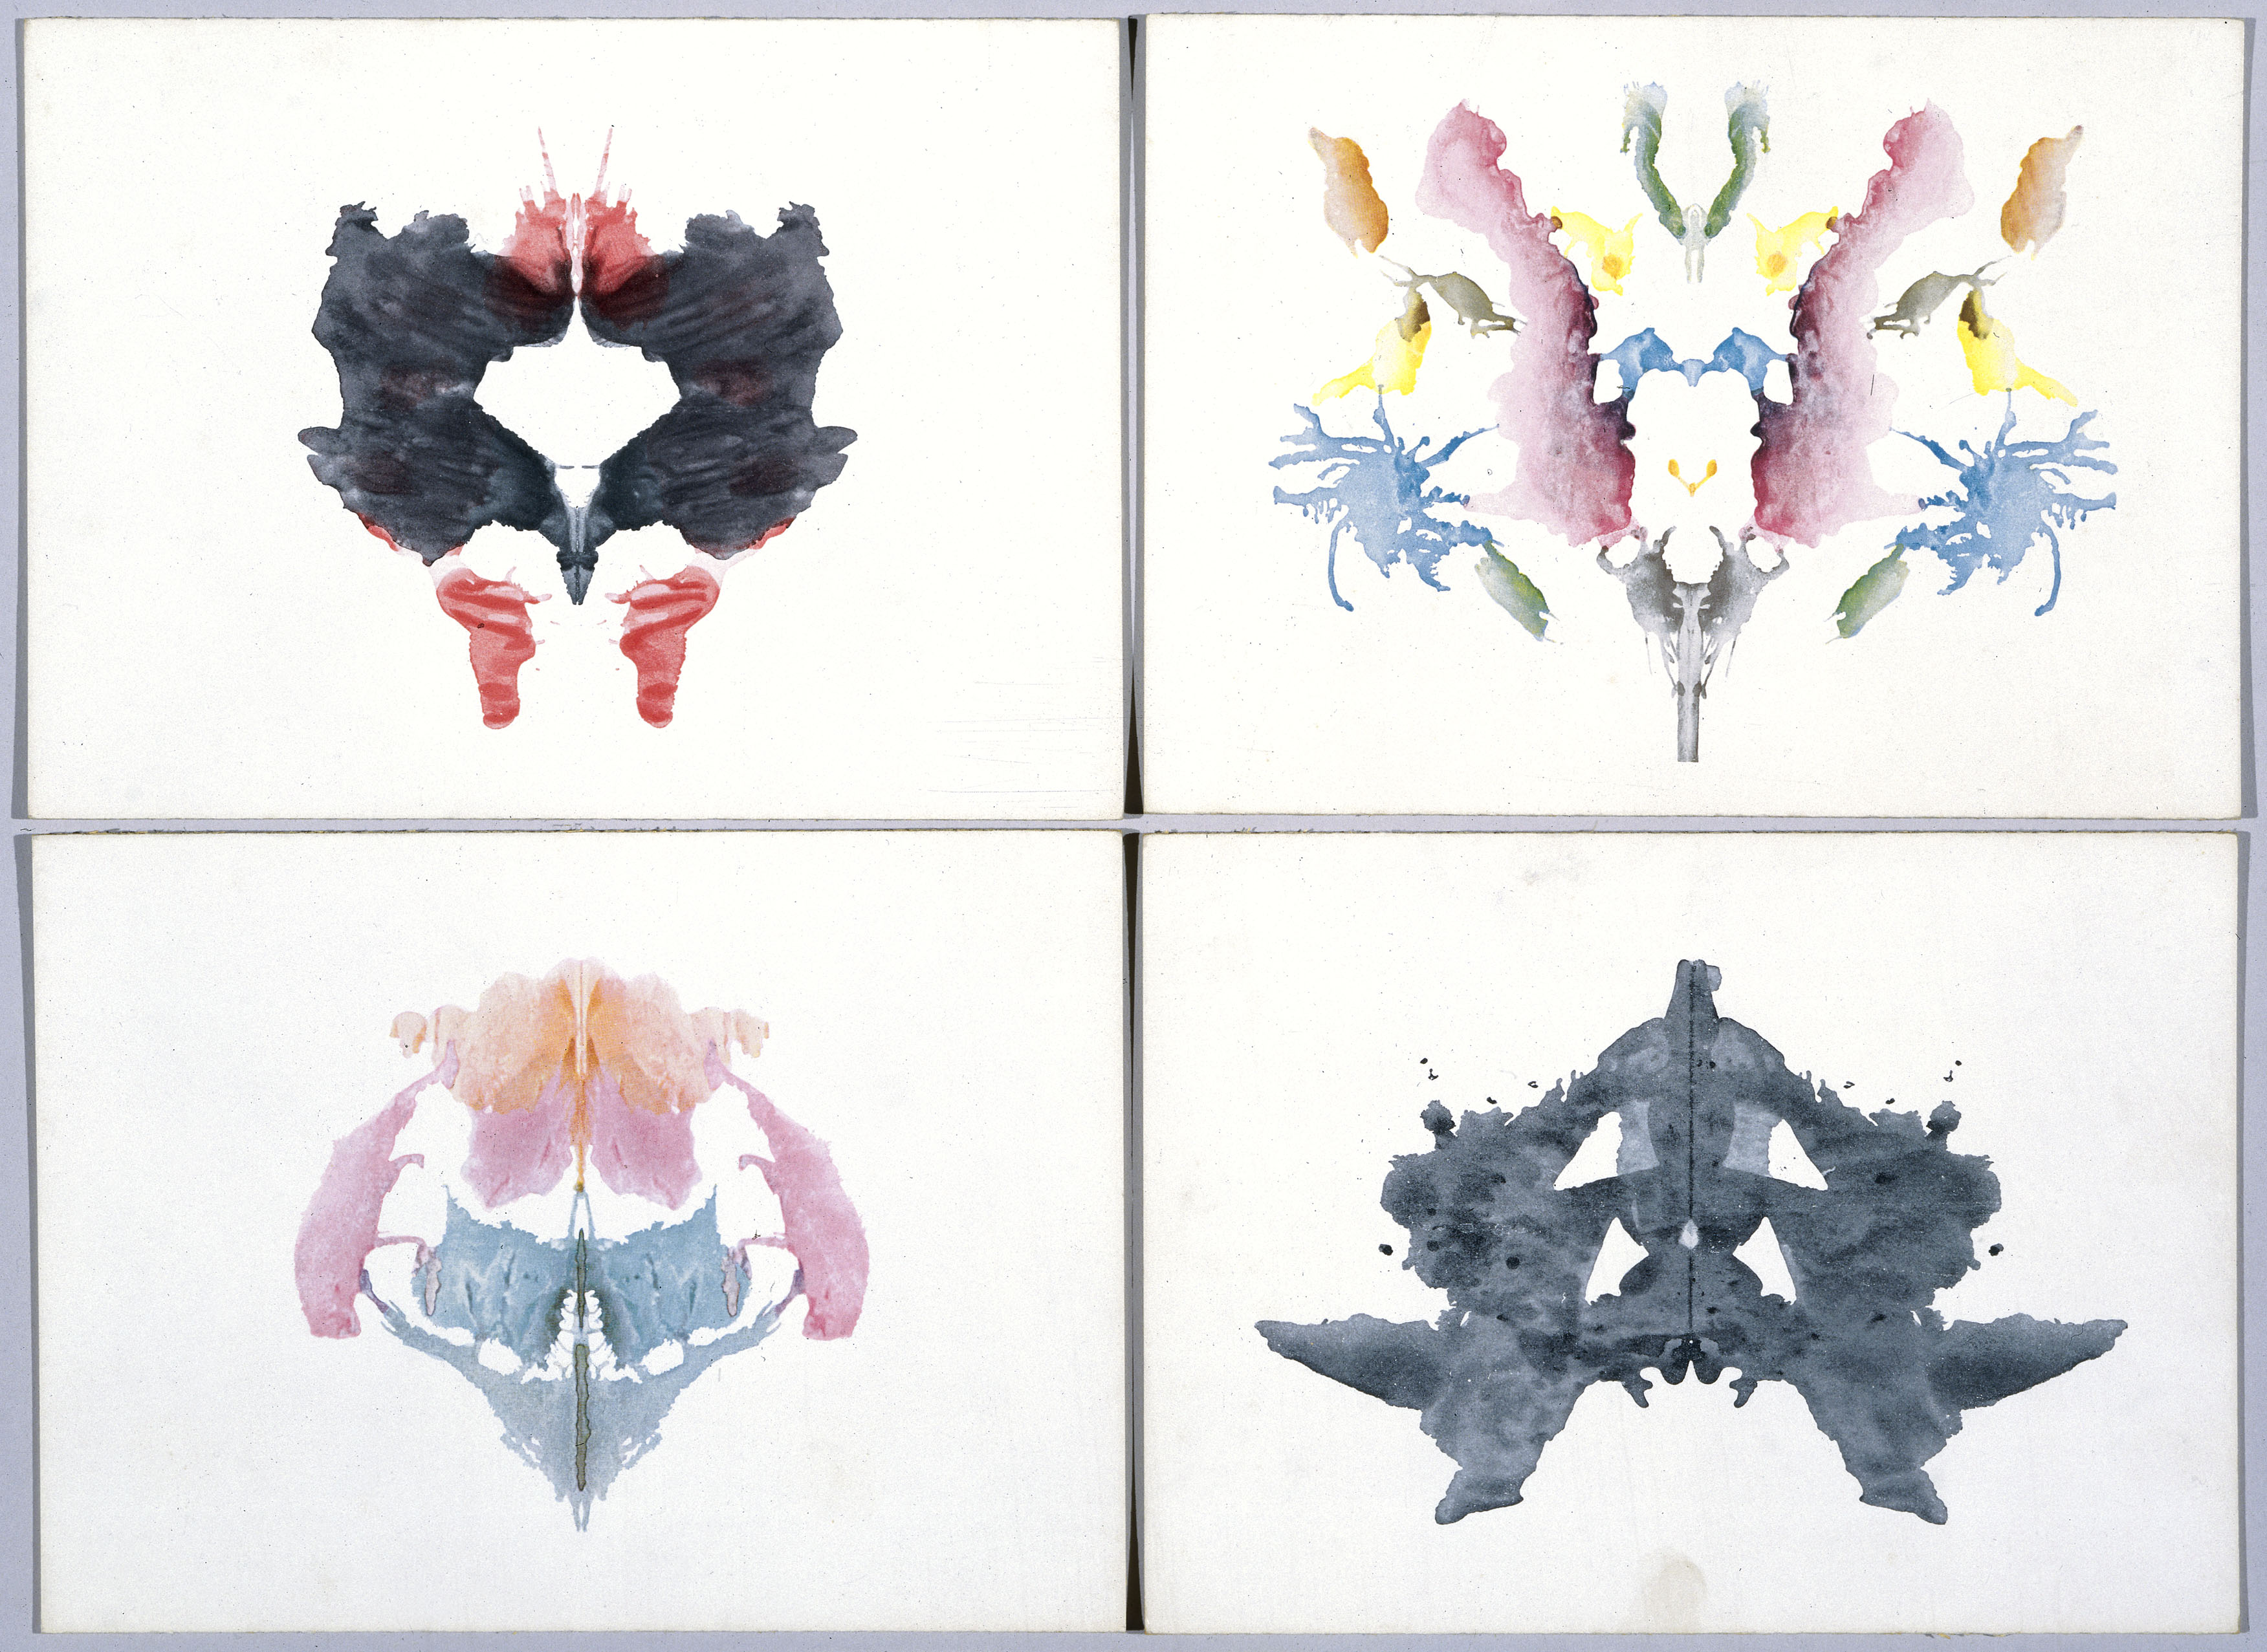 The history and the wisdom of Hermann Rorschach's ink blots